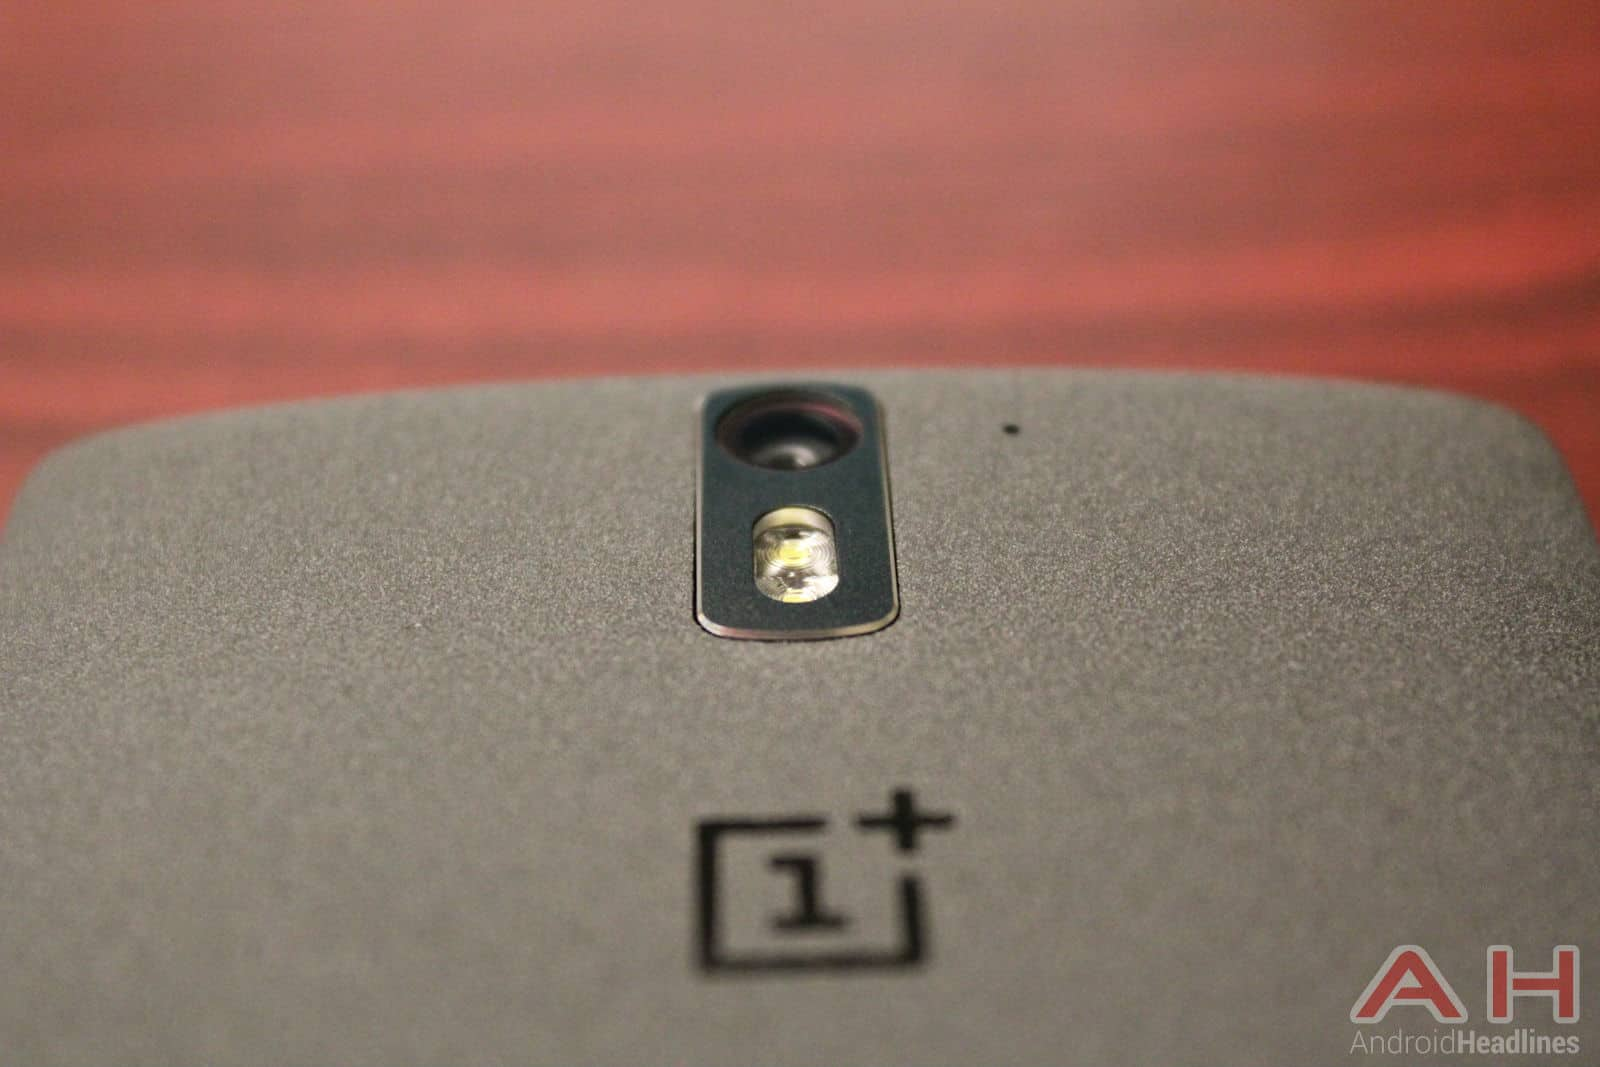 OnePlus-One-logo-camera-2